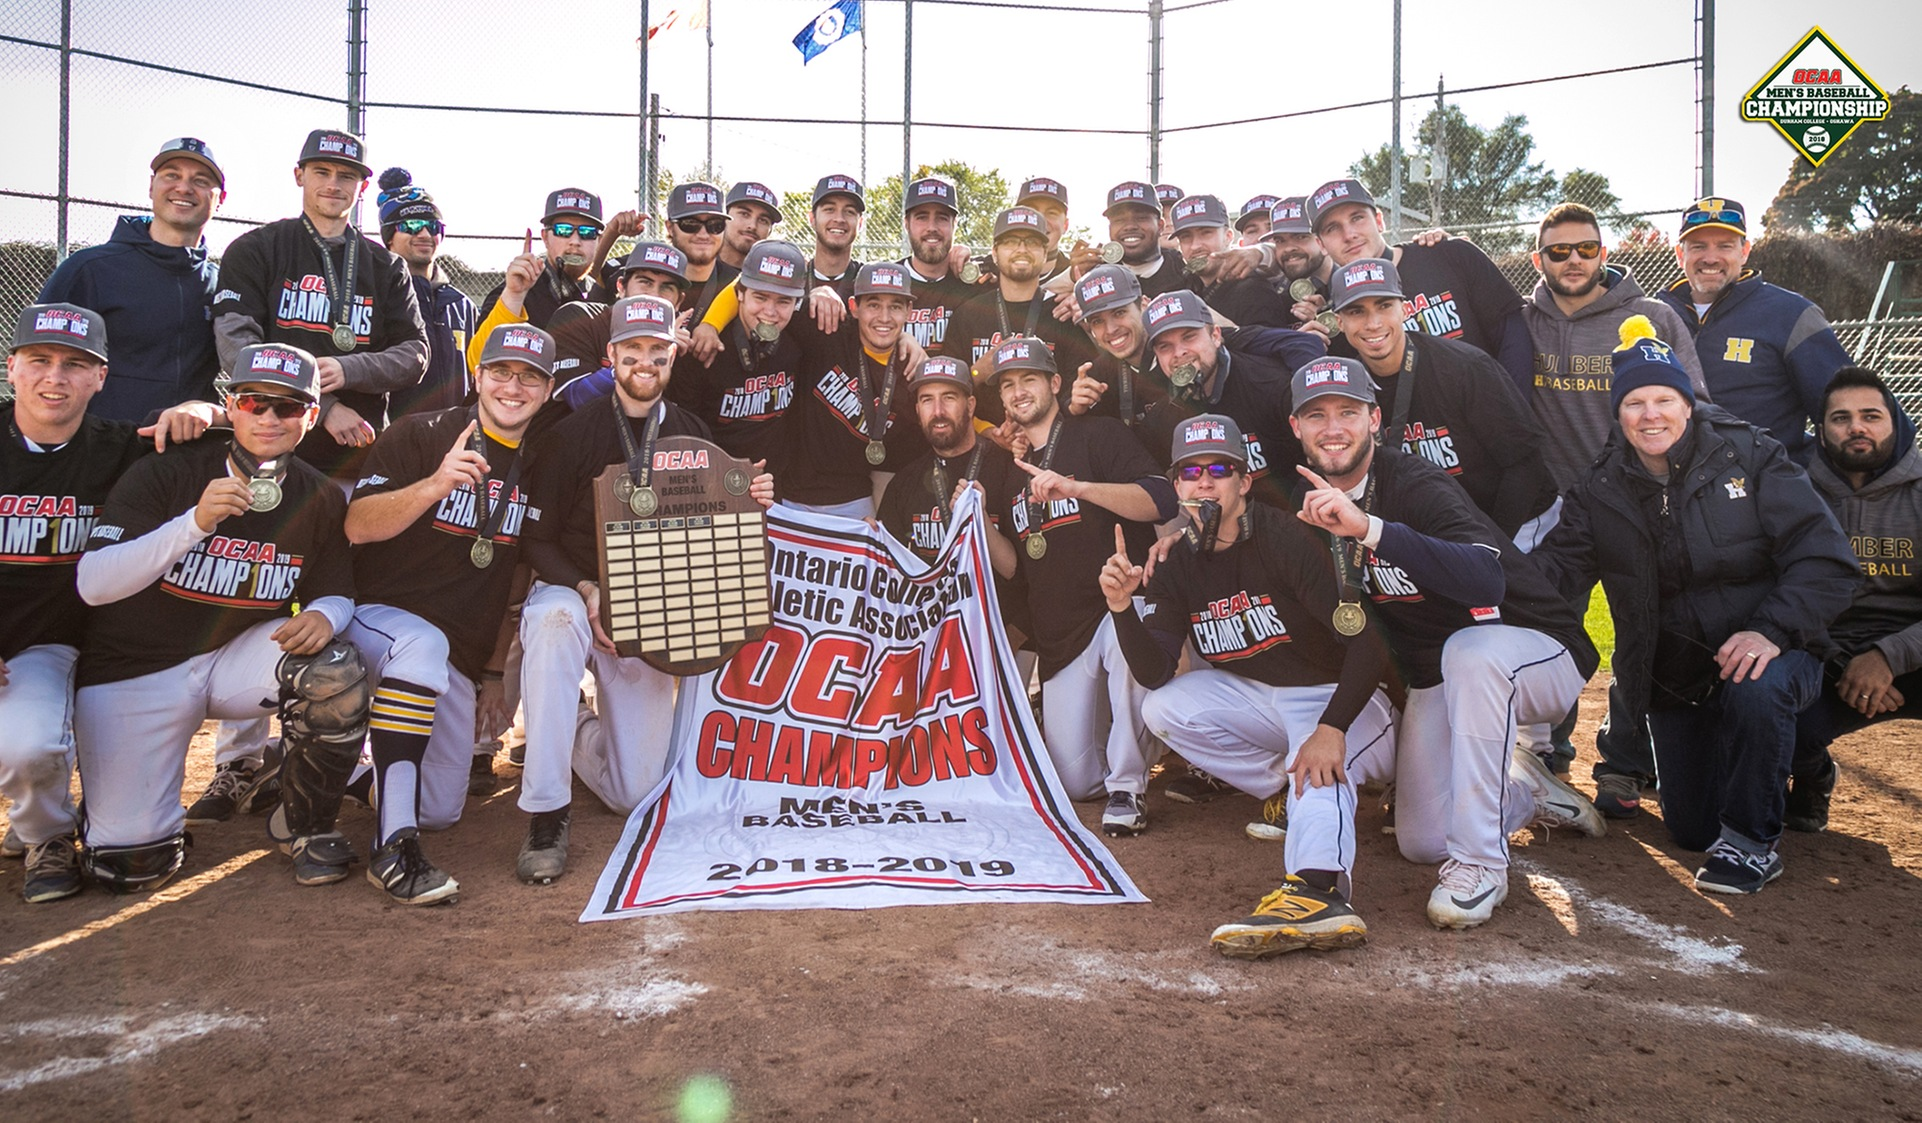 BASEBALL'S FIRST TITLE COMES BY WAY OF STIRRING 14-5 COME-FROM-BEHIND WIN